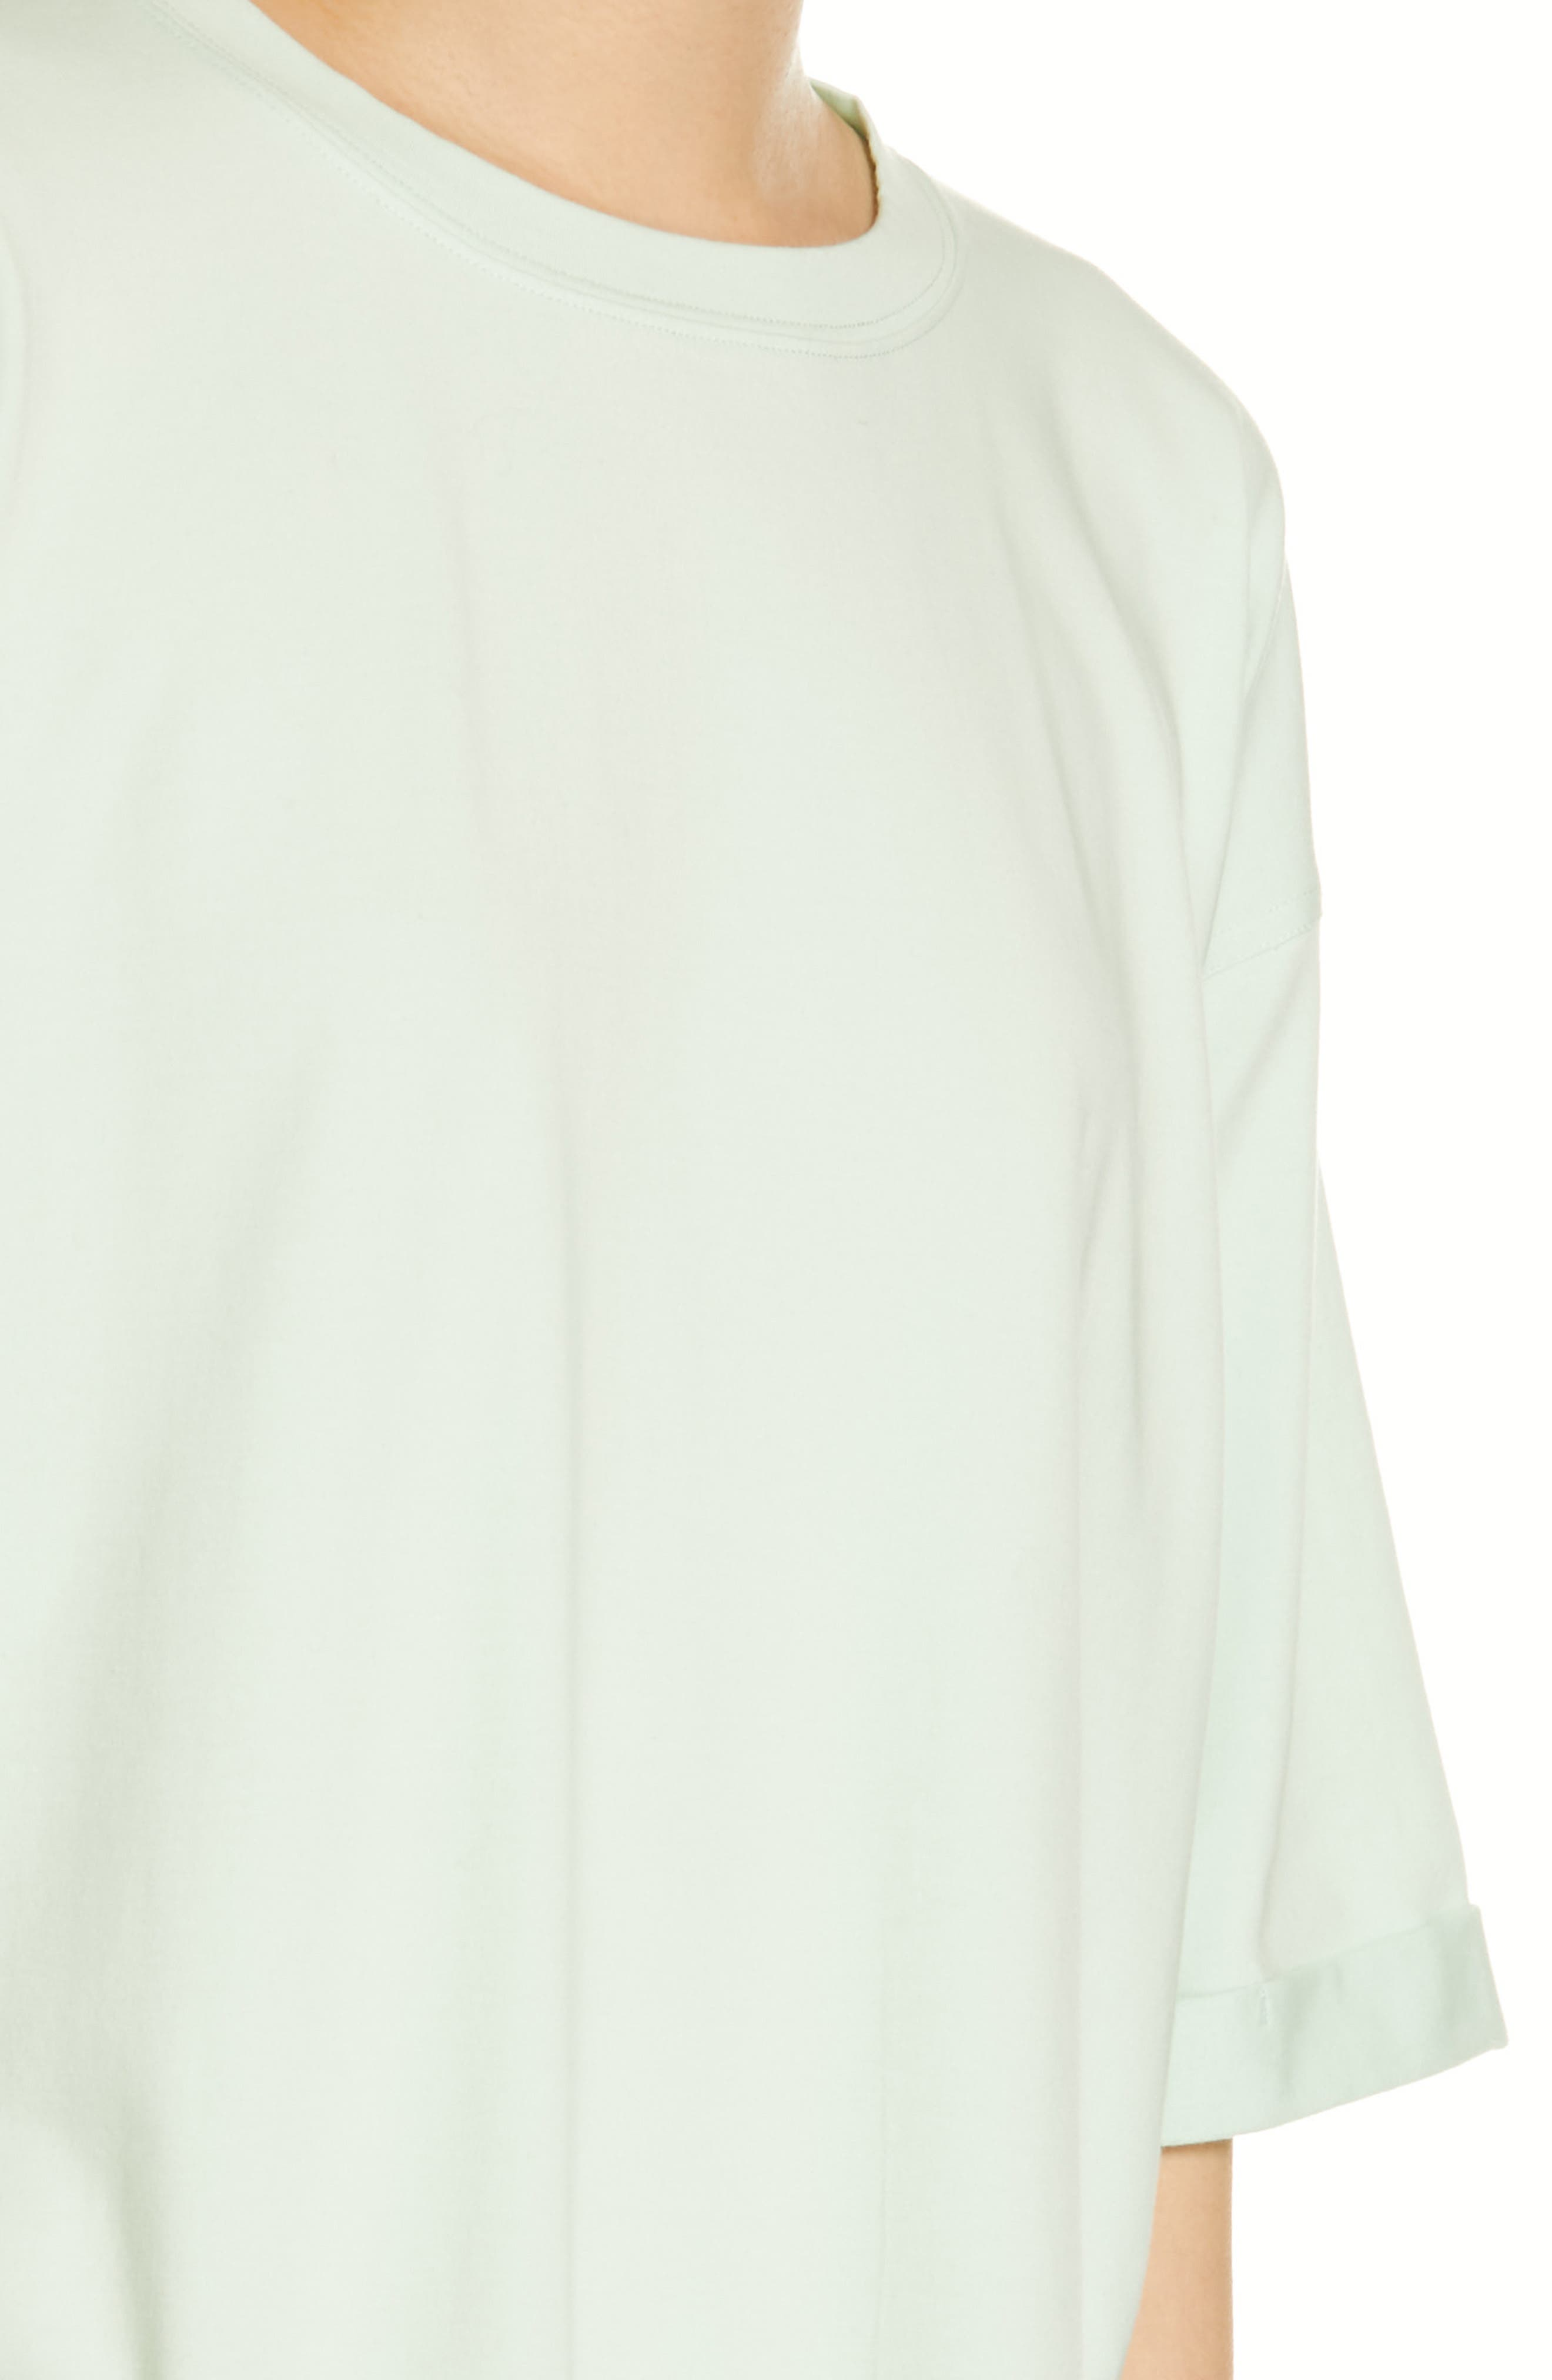 EILEEN FISHER, Stretch Organic Cotton Top, Alternate thumbnail 4, color, PRISM